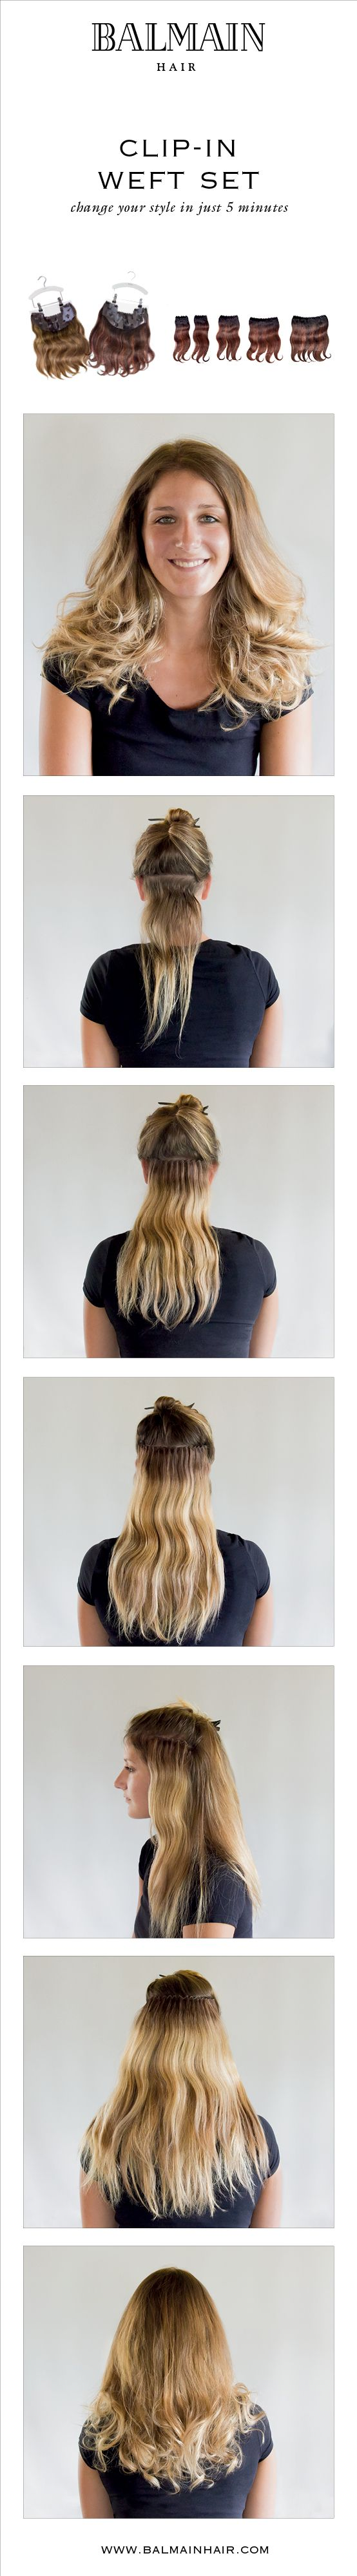 Incredible Look Full And Luscious Hair Created With The Clip In